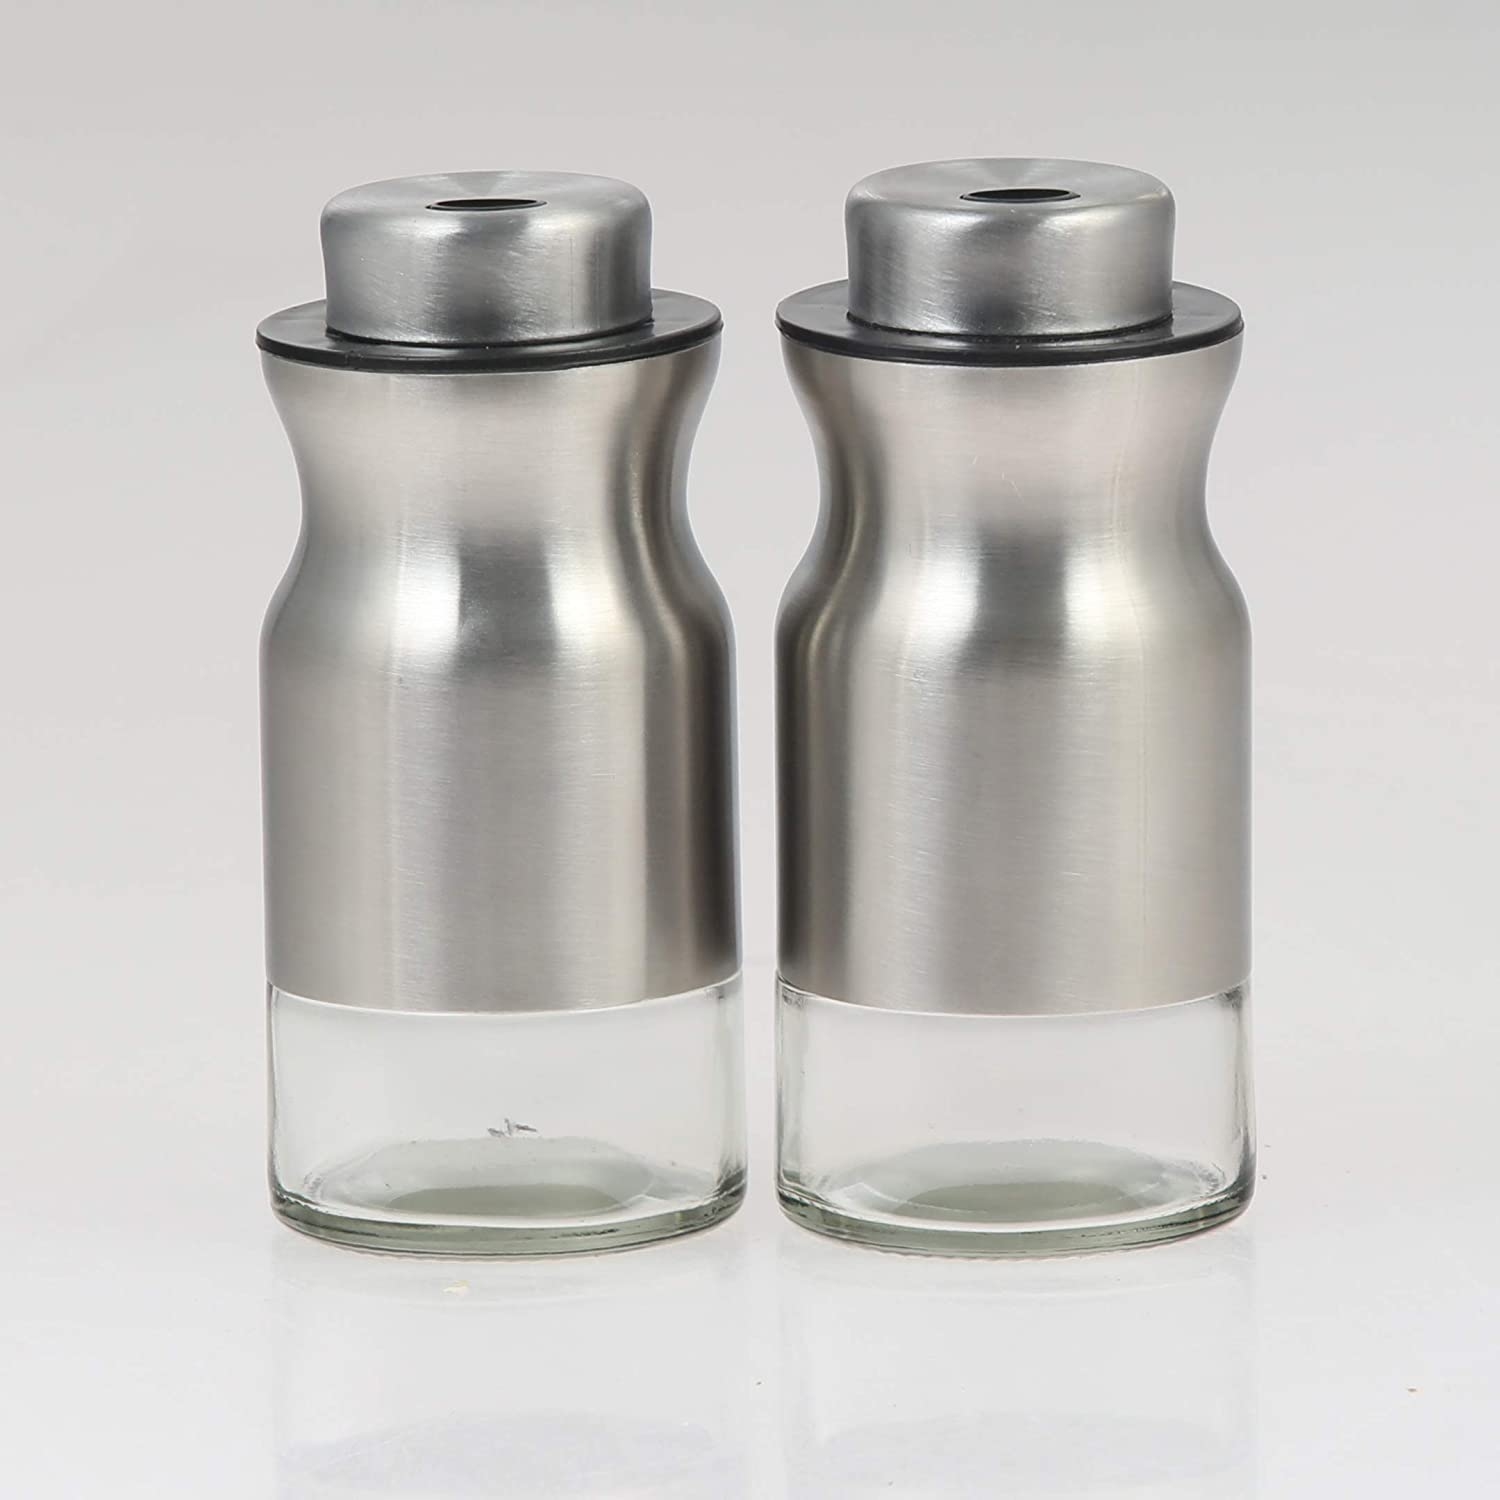 with adjustable pour holes dispenser lids Stainless Steel with Glass bottoms 2-Piece Set. Salt and Pepper Shaker